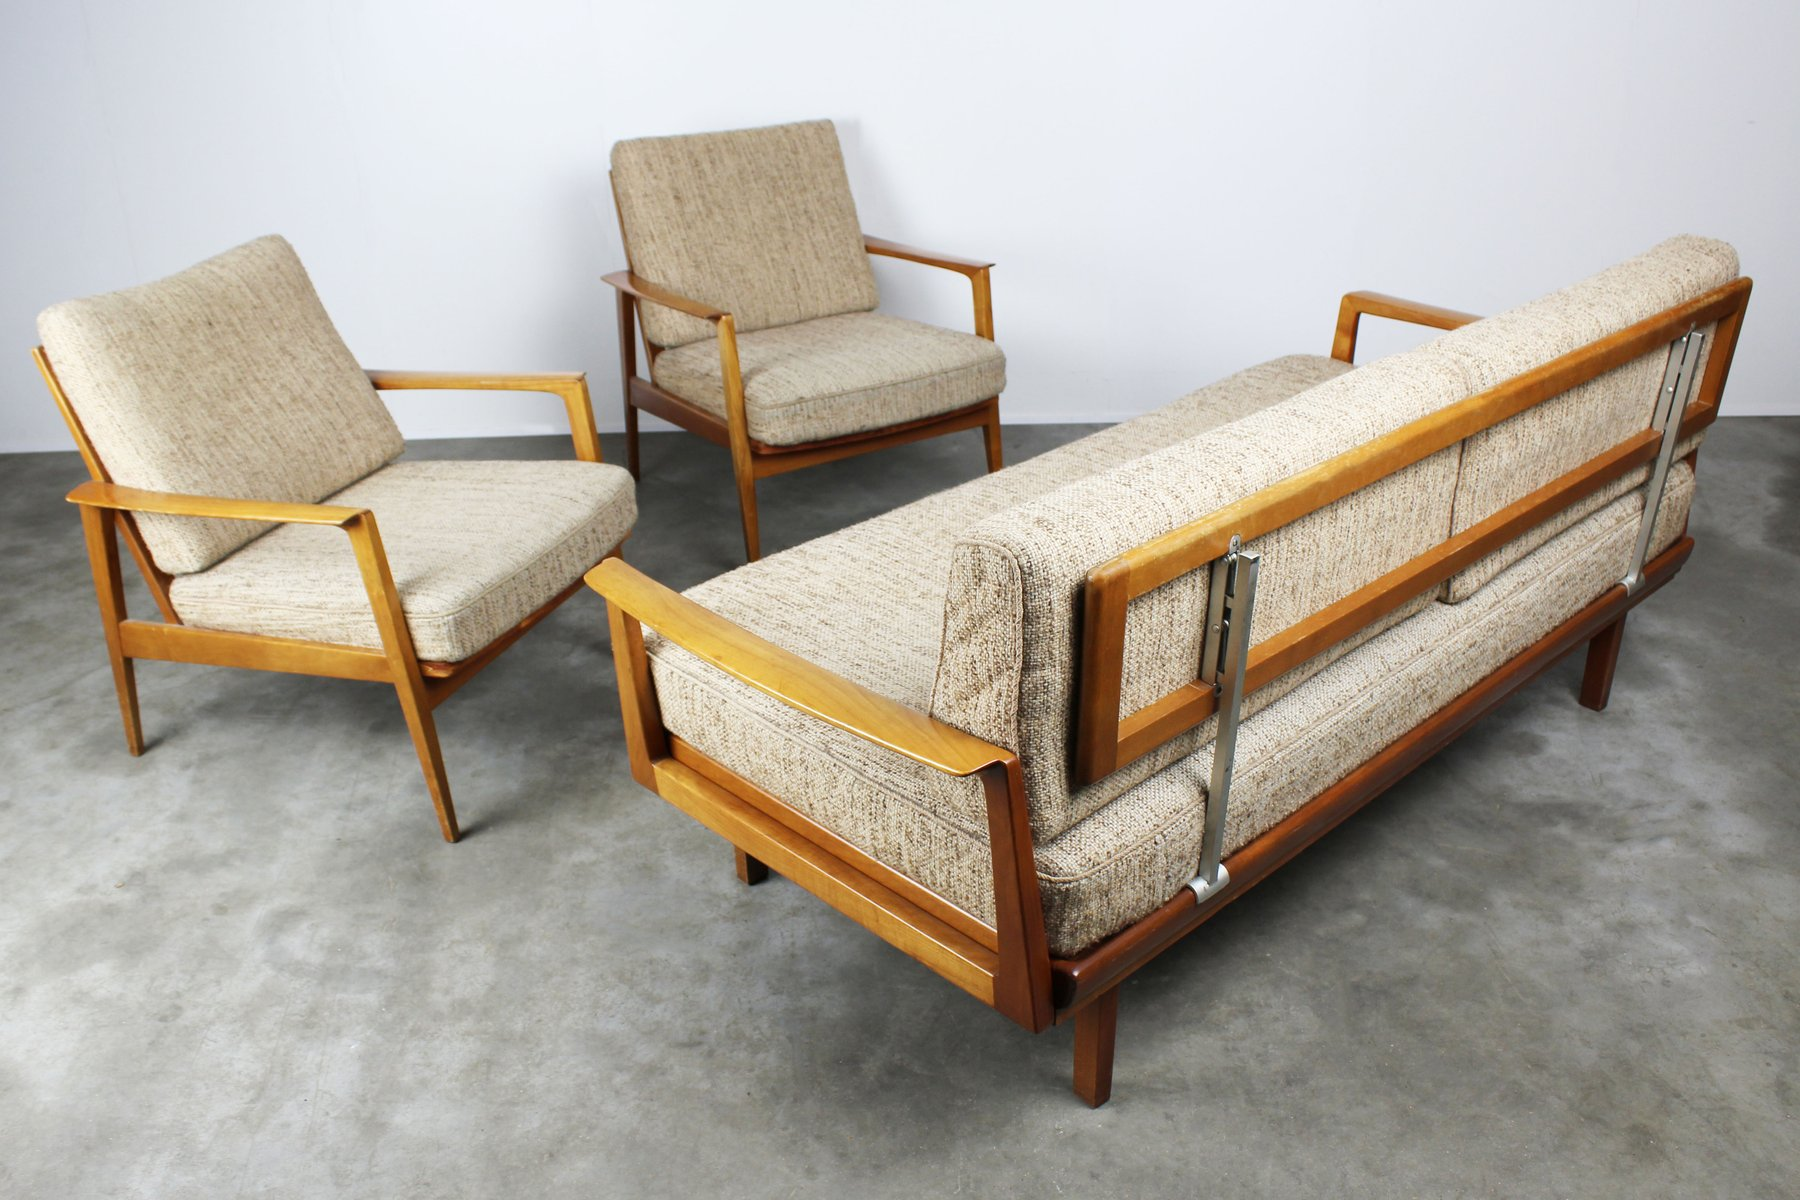 Knoll Stoffe. Top Avio Sofa System With Knoll Stoffe. Gallery Of ...